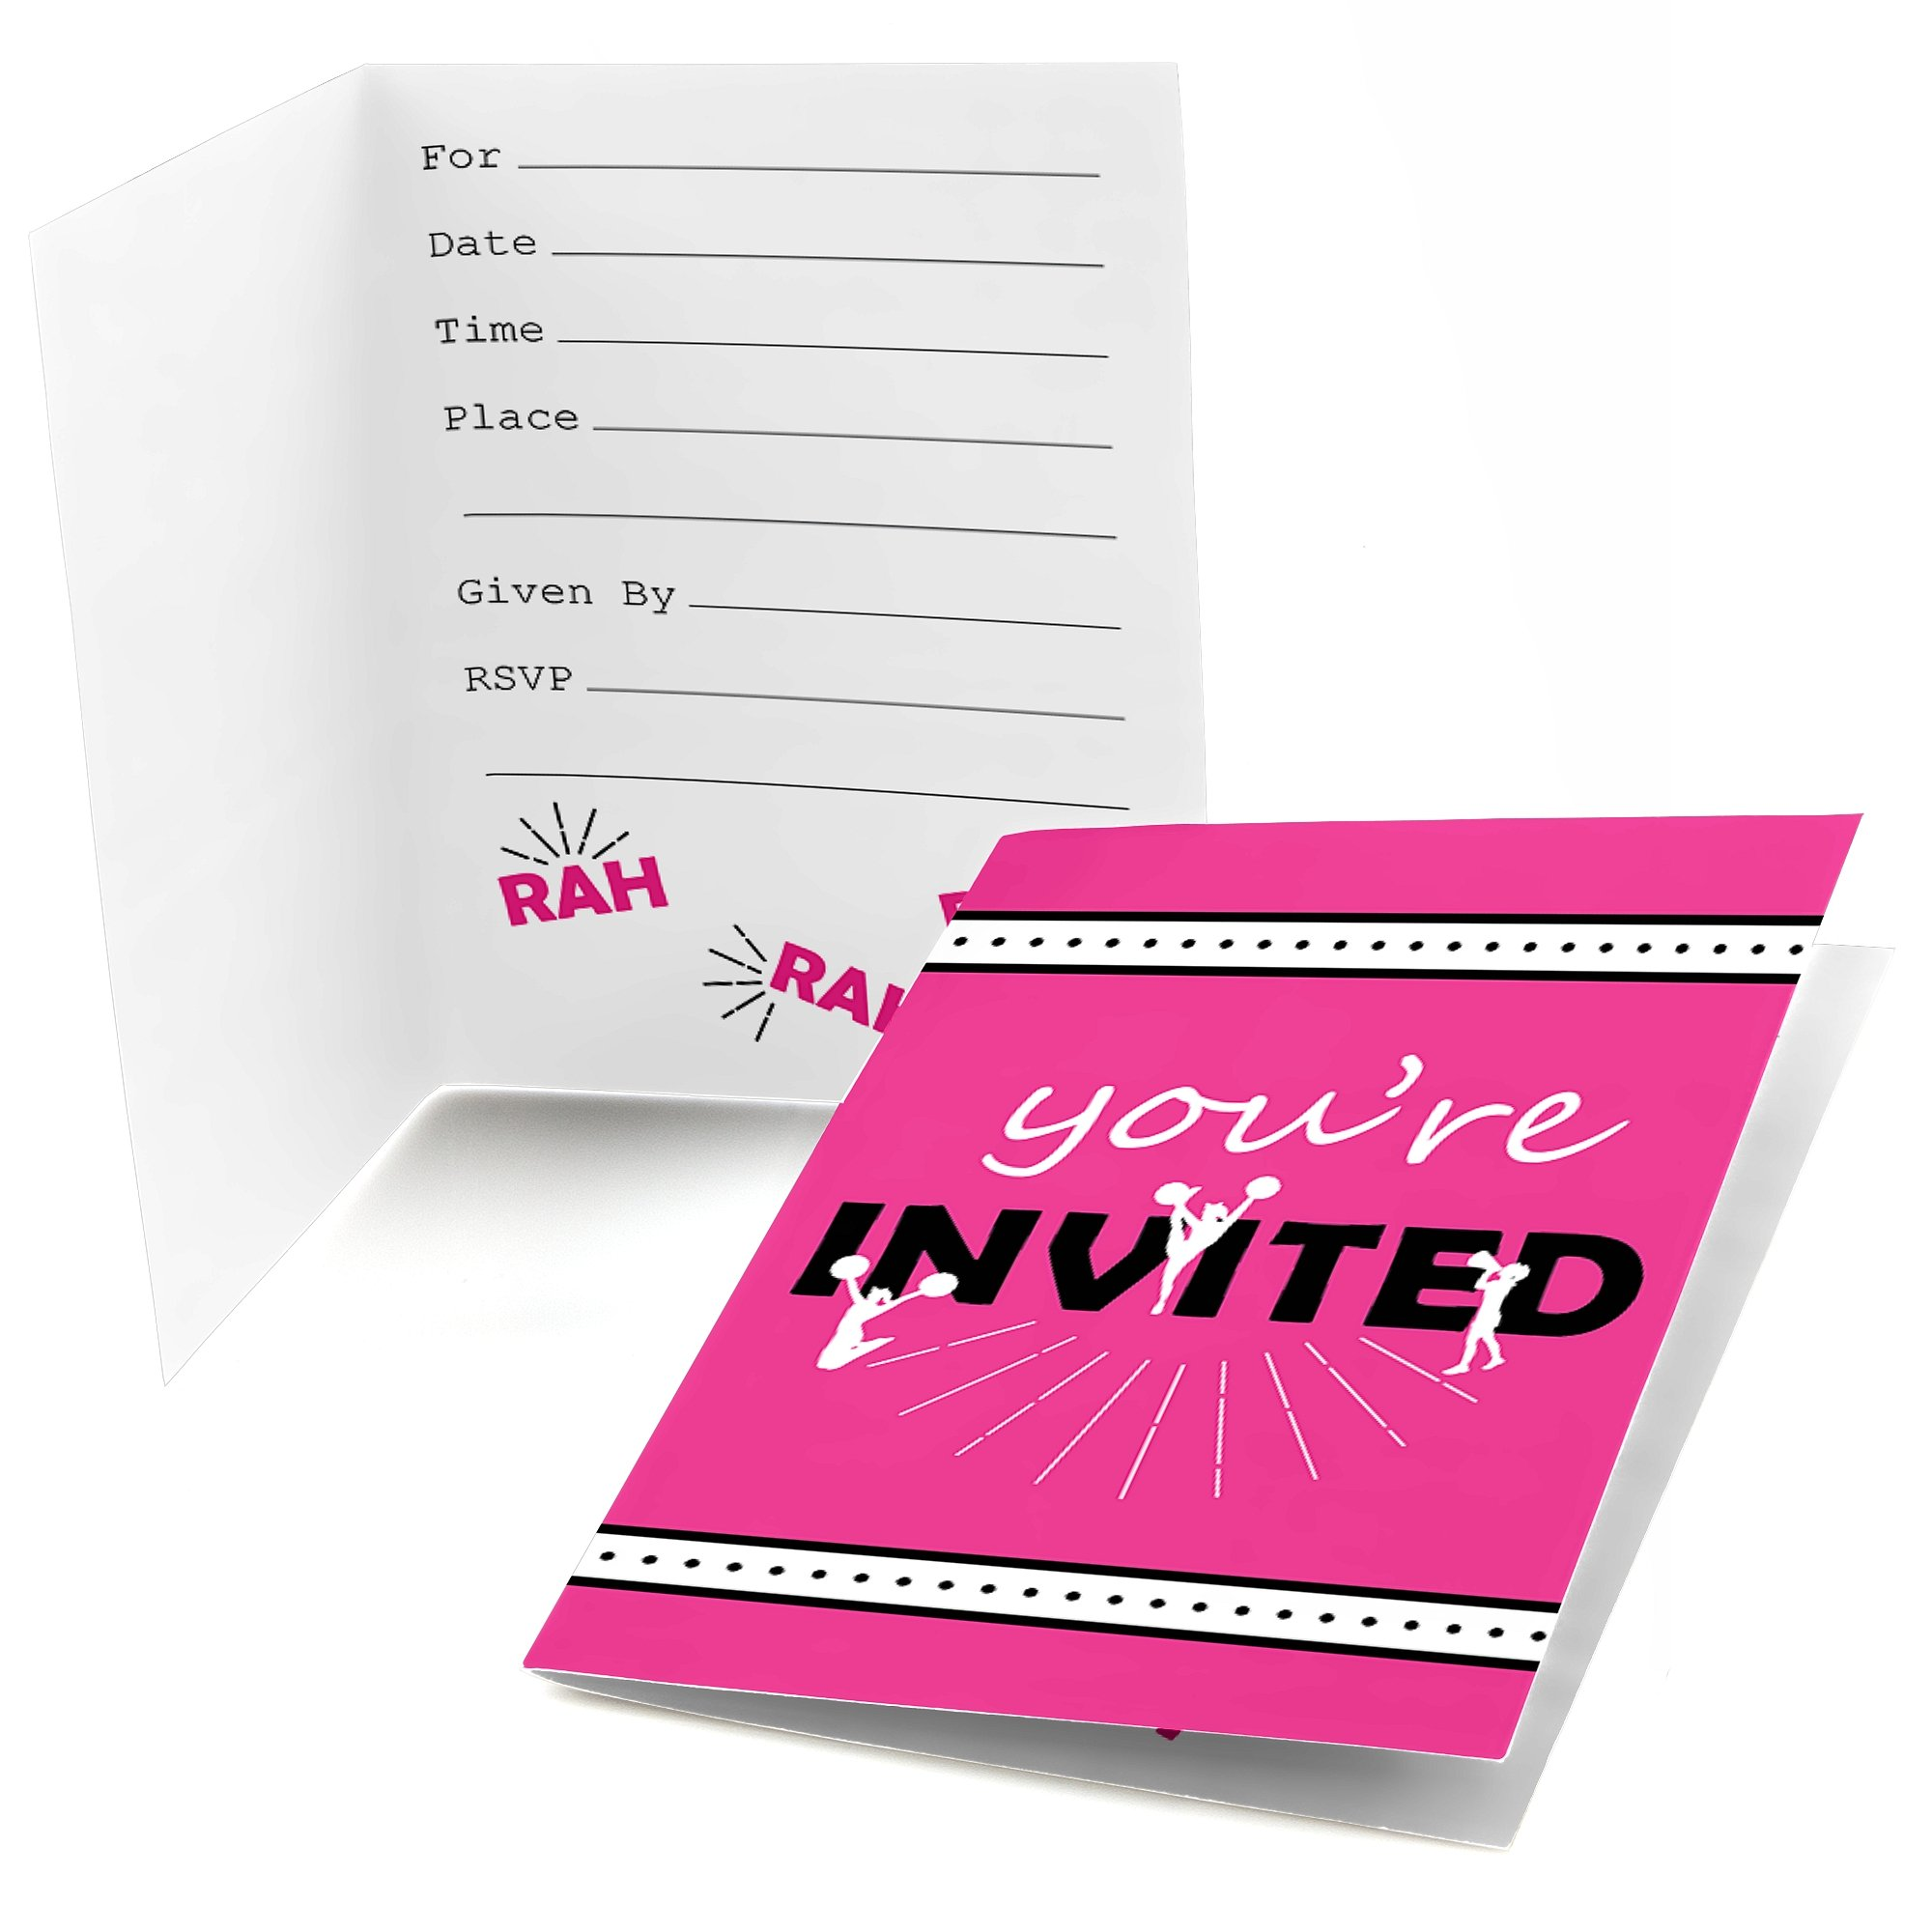 We've Got Spirit - Cheerleading - Fill In Birthday Party or Cheerleader Party Invitations (8 count)